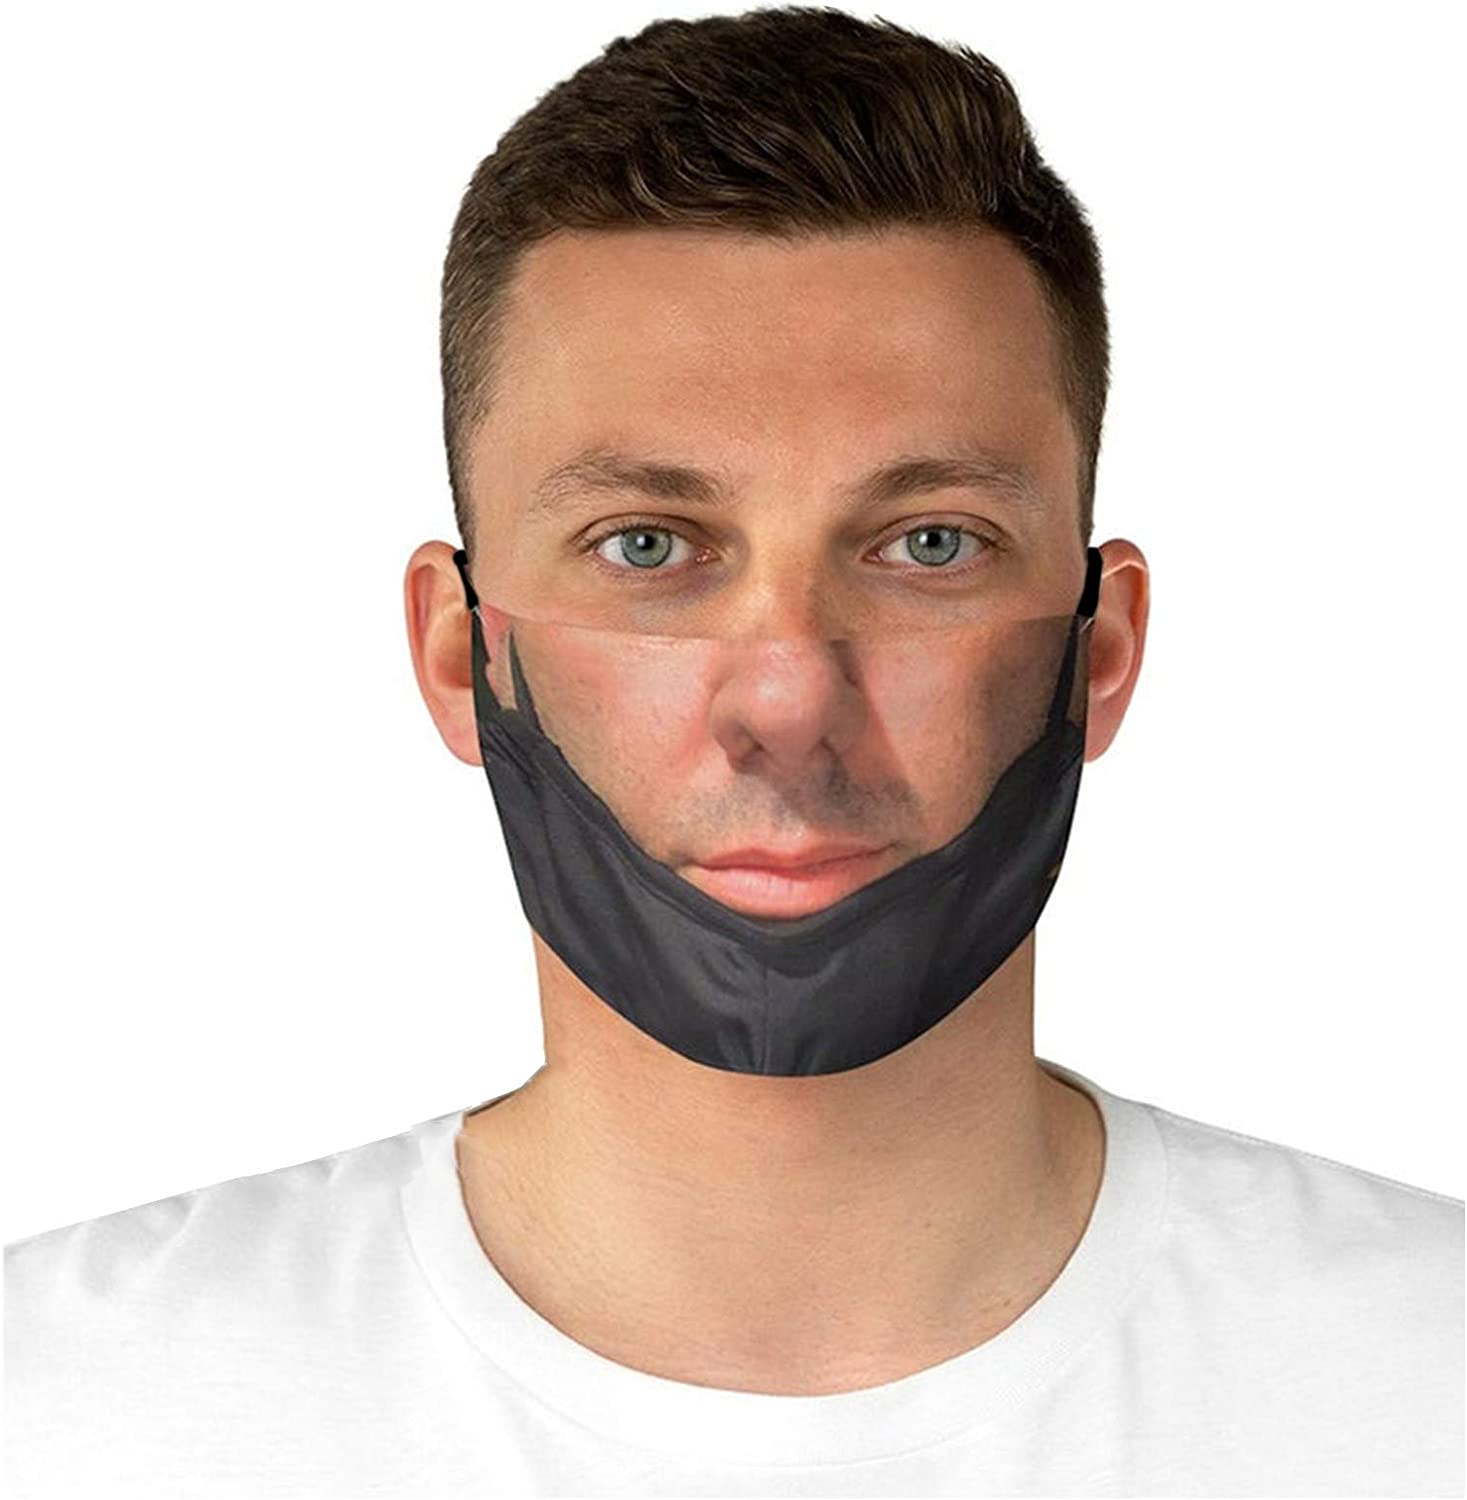 A Prank Face/_Masks for Adults Reusable Funny Face/_Masks Wearing a Mask Pulled Down Realistic Face Bandana Cloth Fabric Balaclavas Breathable Washable Pretend Mask Trick for Man Woman 2021 New